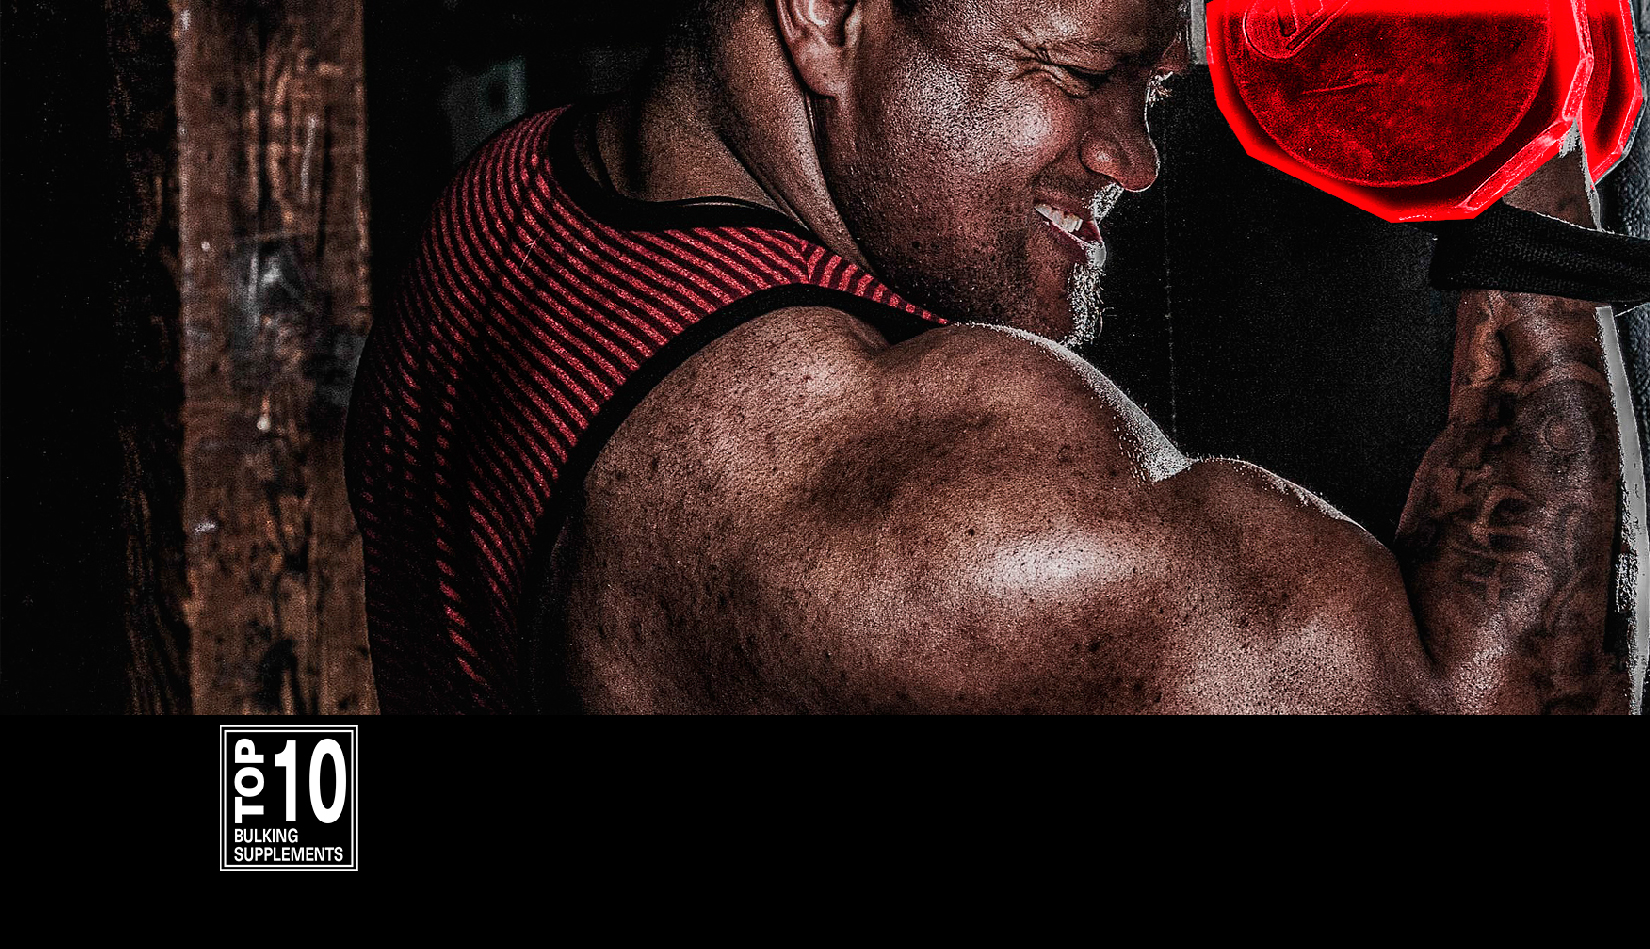 Top 10 Bulking Supplements of 2015